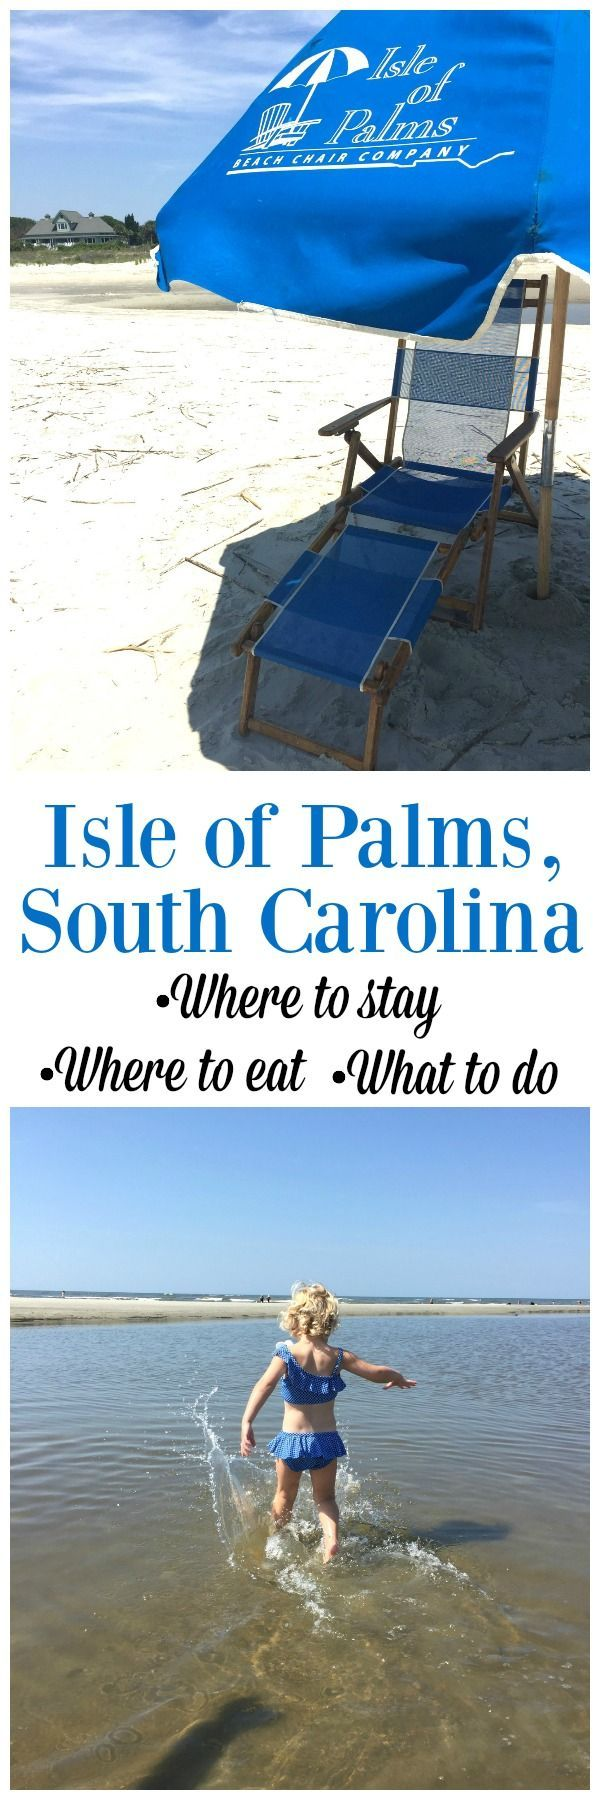 If you're not a fan of crowded Florida beaches, then you should definitely give an Isle of Palms Beach Vacation in South Carolina a try. It's about 30 minutes outside of Charleston and has beautiful beaches, great places to stay and eat. Best of all, this